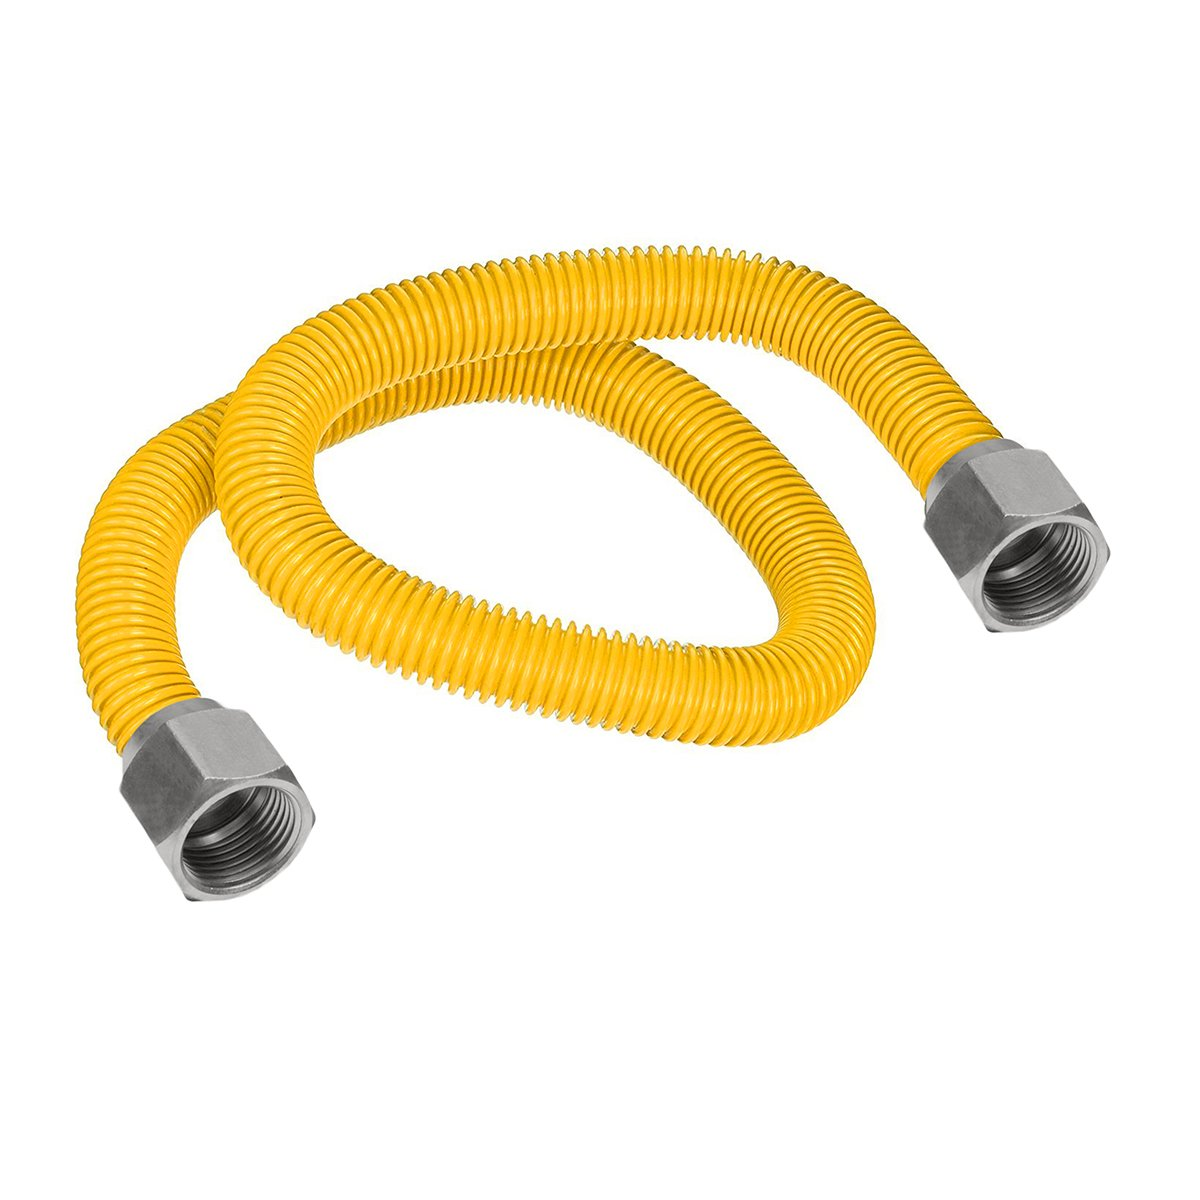 Flextron FTGC-YC12-30 28'' Flexible Epoxy Coated Gas Line Connector with 5/8'' Outer Diameter and Nut Fittings, Yellow/Stainless Steel